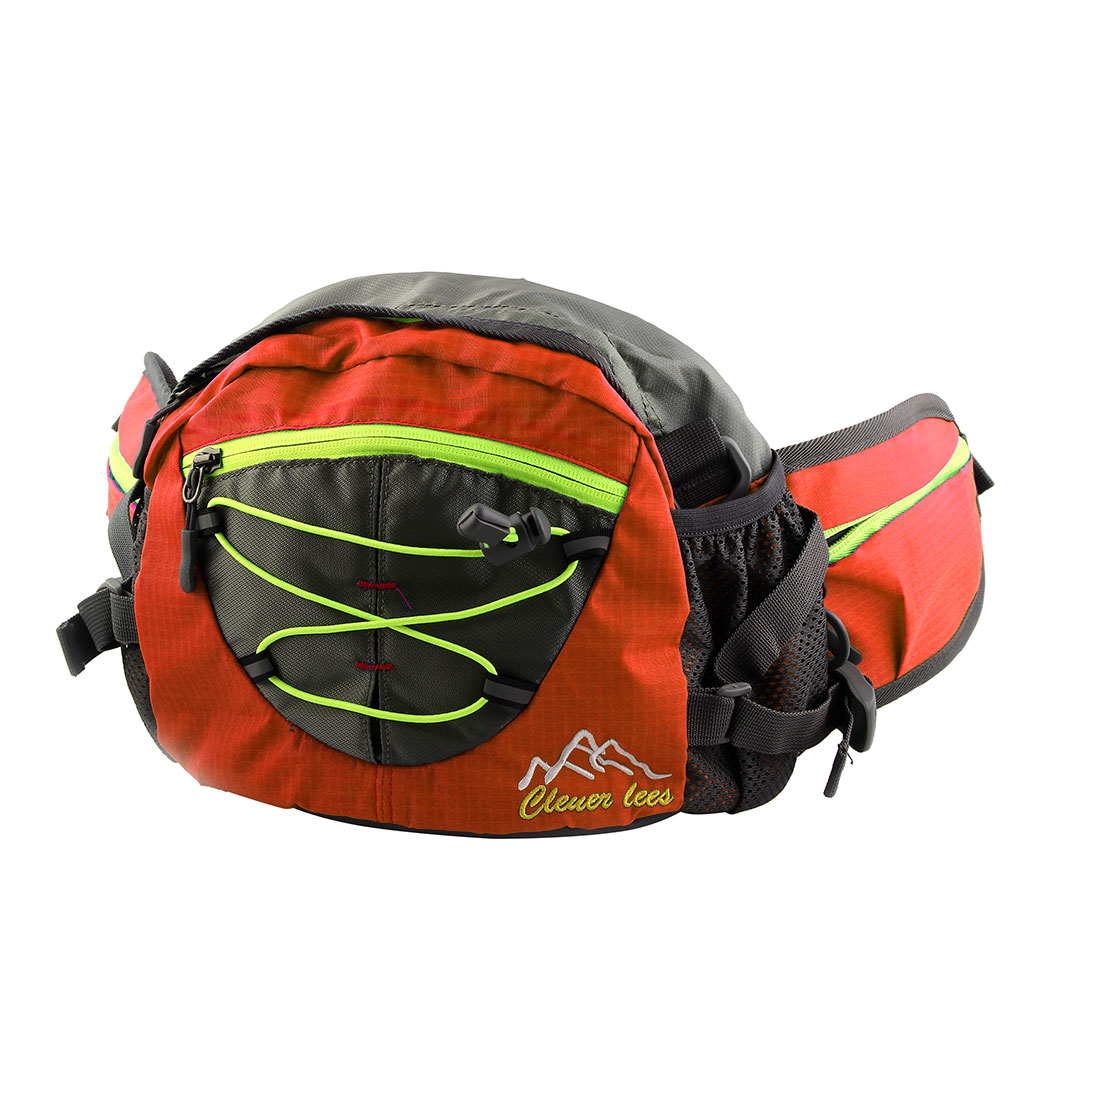 Clever Bees Authorized Outdoor Backpack Shoulder Pack Sports Waist Bag